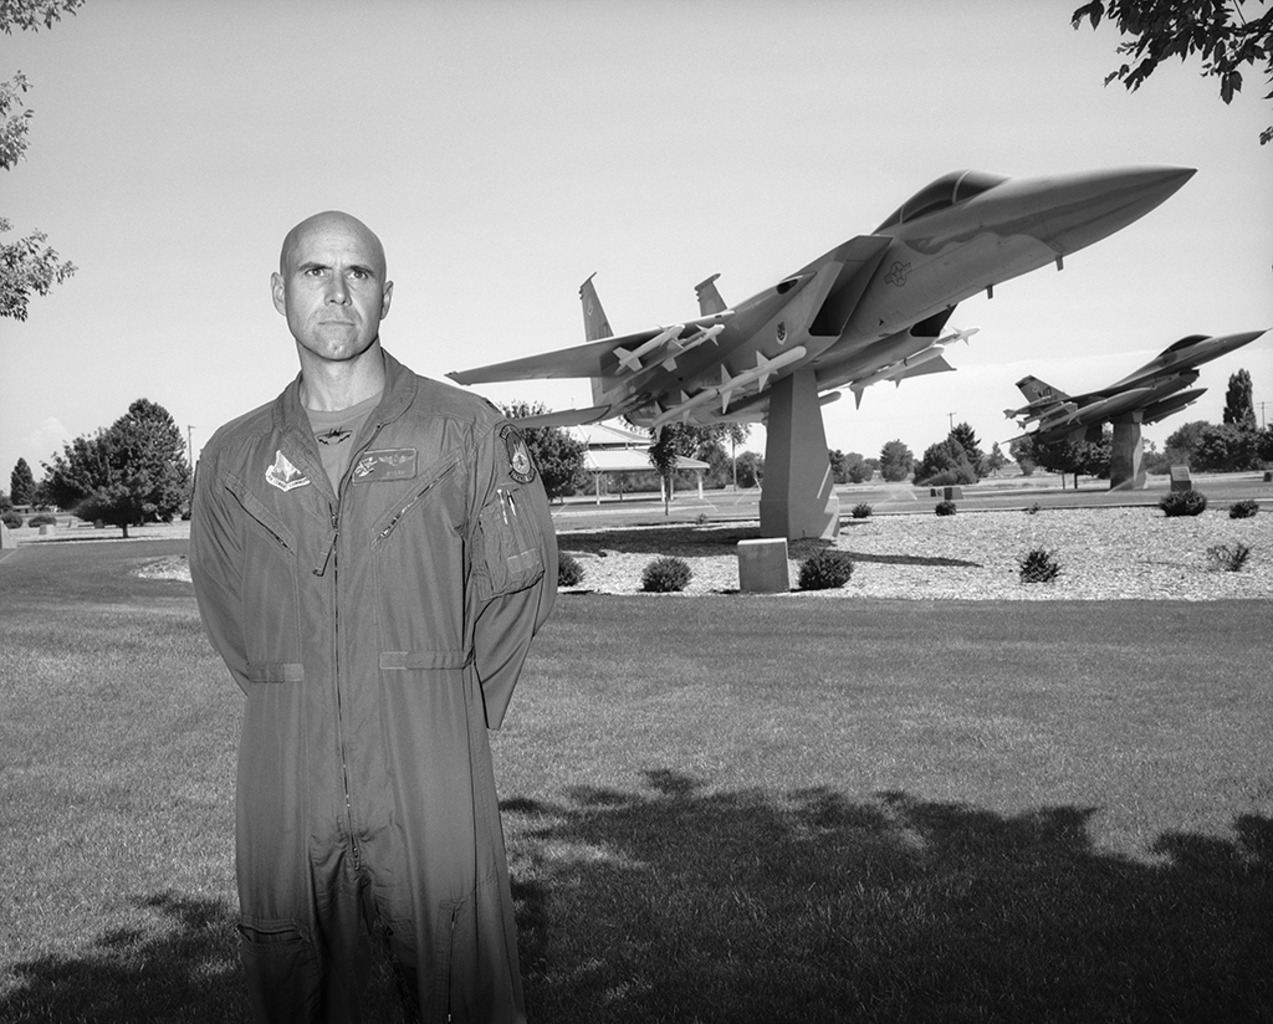 Victor Fehrenbach, Boise, ID, 2011 Lieutenant Colonel, US Air Force, 1991–2011